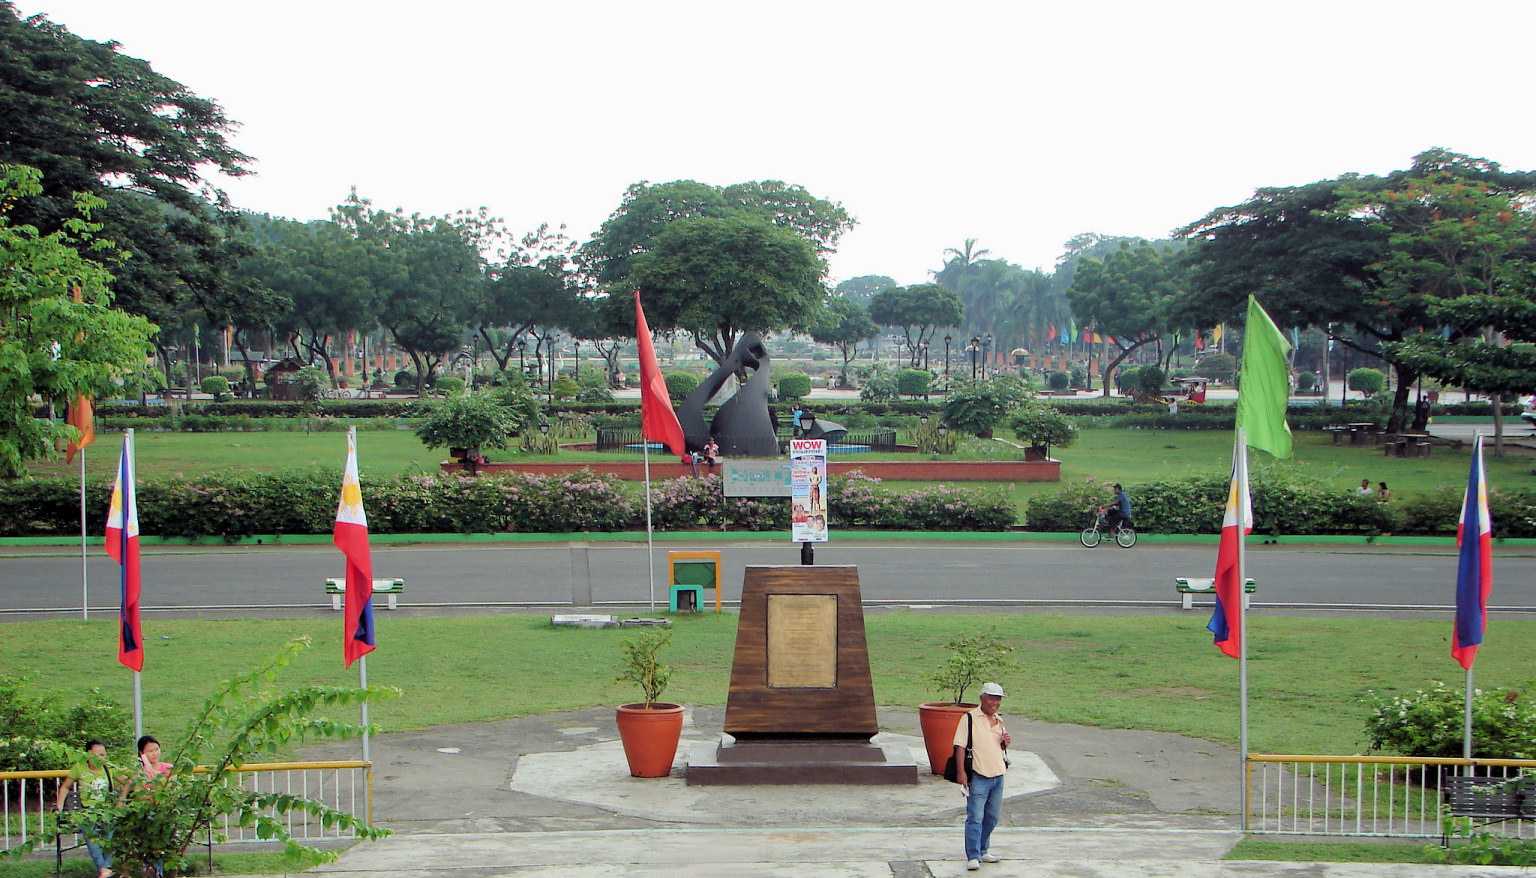 philippines and rizal essay In the speech, rizal expressed his deep regard for spain, but condemned the friars in the philippines when copies of the speech reached manila, he earned the anger and enmity of the authorities who called him afilibustero or a subversive.